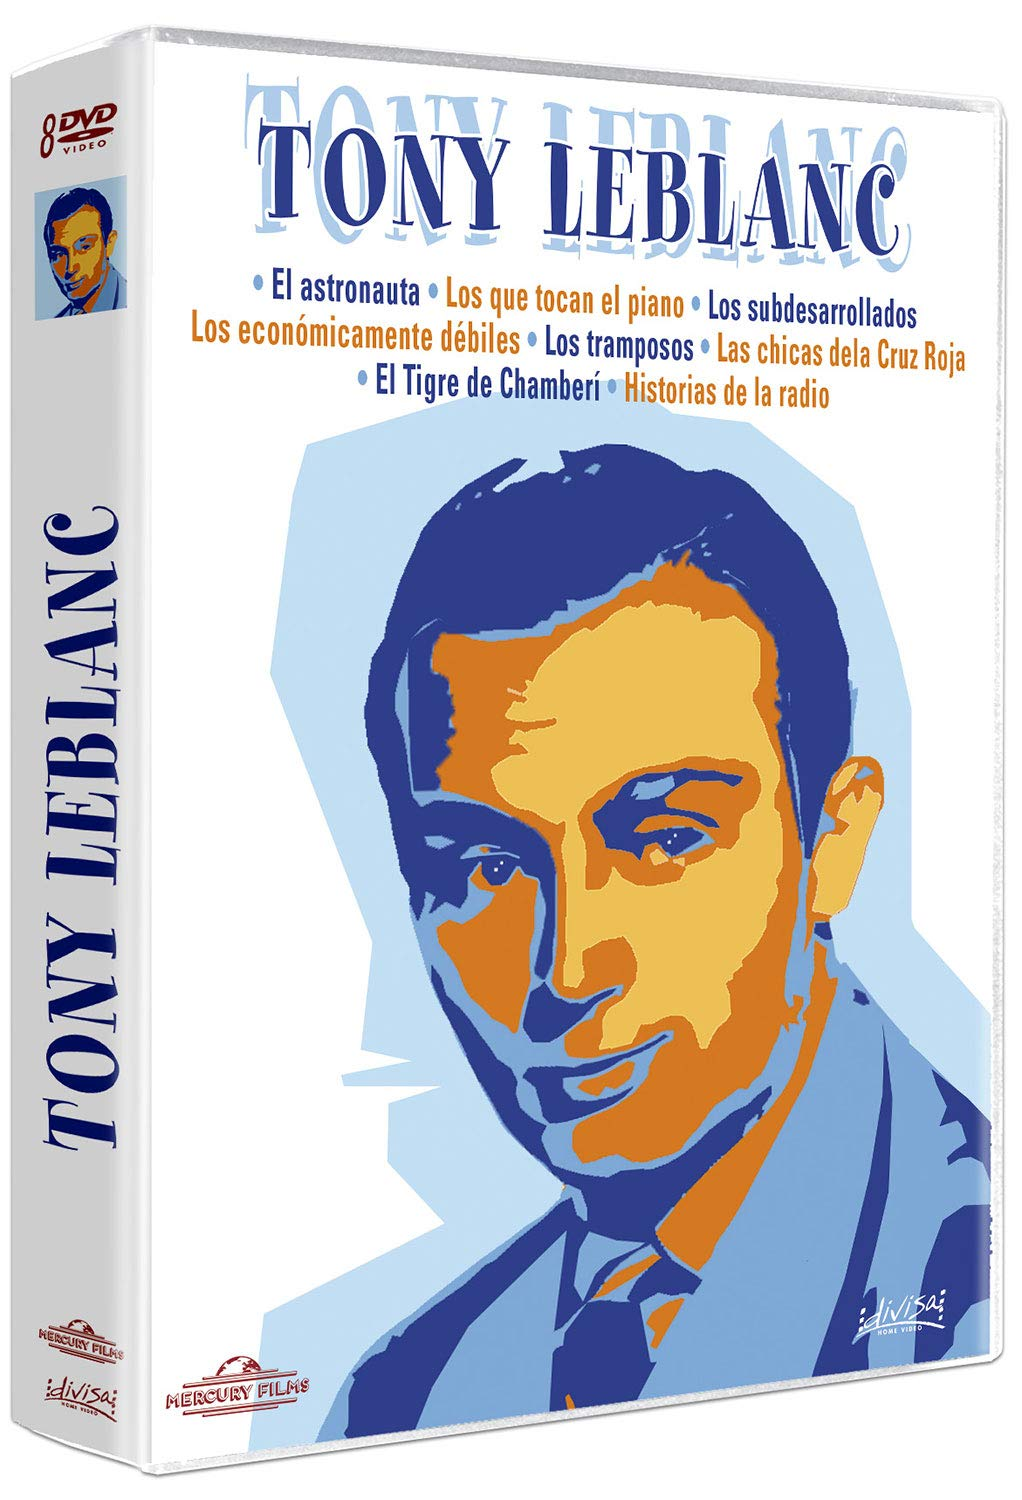 Tony Leblanc [DVD]: Amazon.es: Tony Leblanc, Francisco Rabal, Concha Velasco, José Luis López Vázquez, Alfredo Landa, Varios, Tony Leblanc, Francisco Rabal: Cine y Series TV